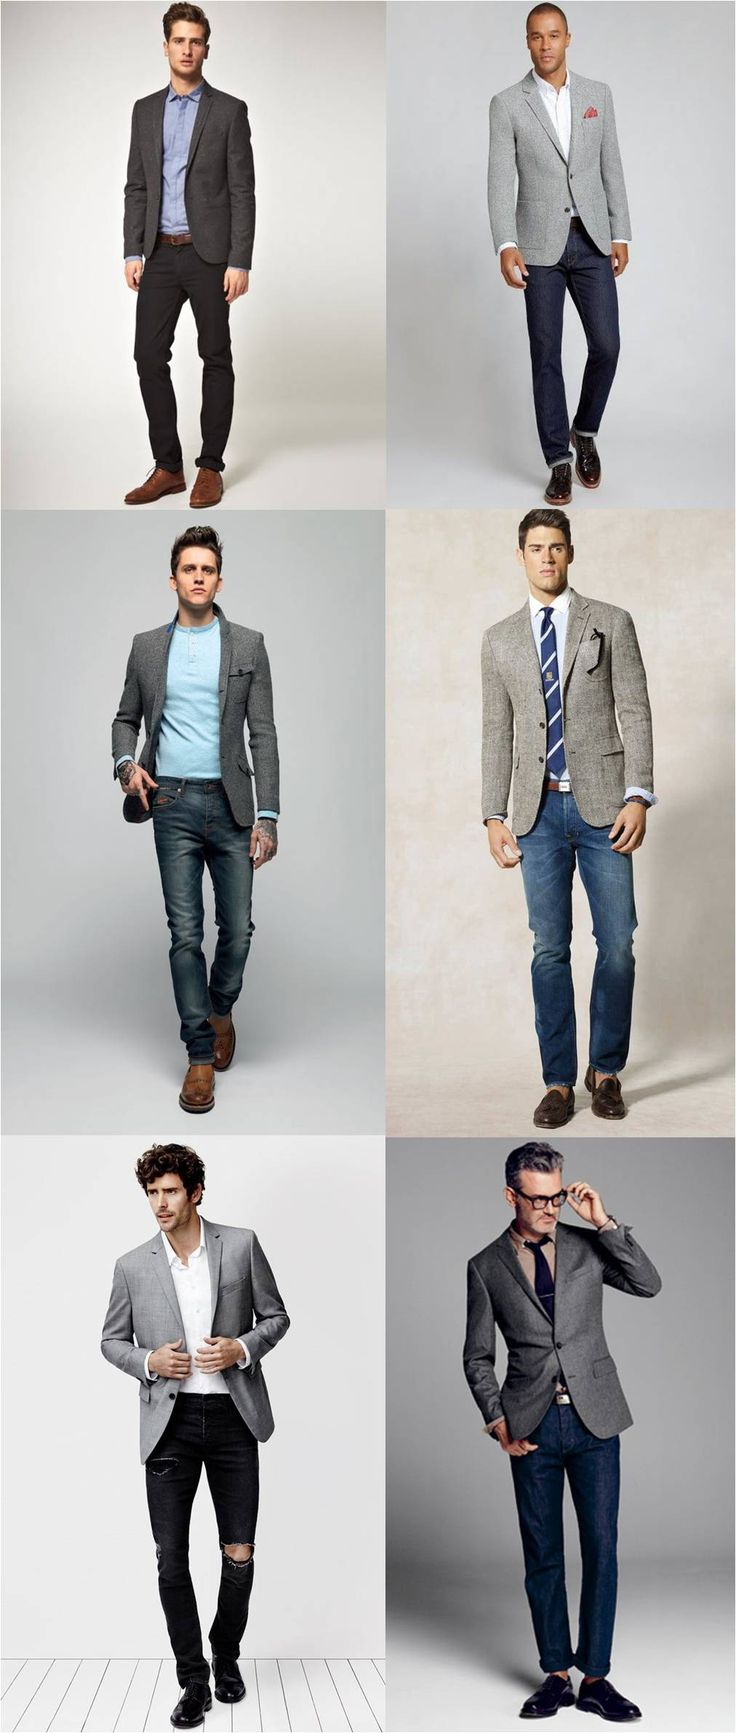 wear a suit jacket with jeans